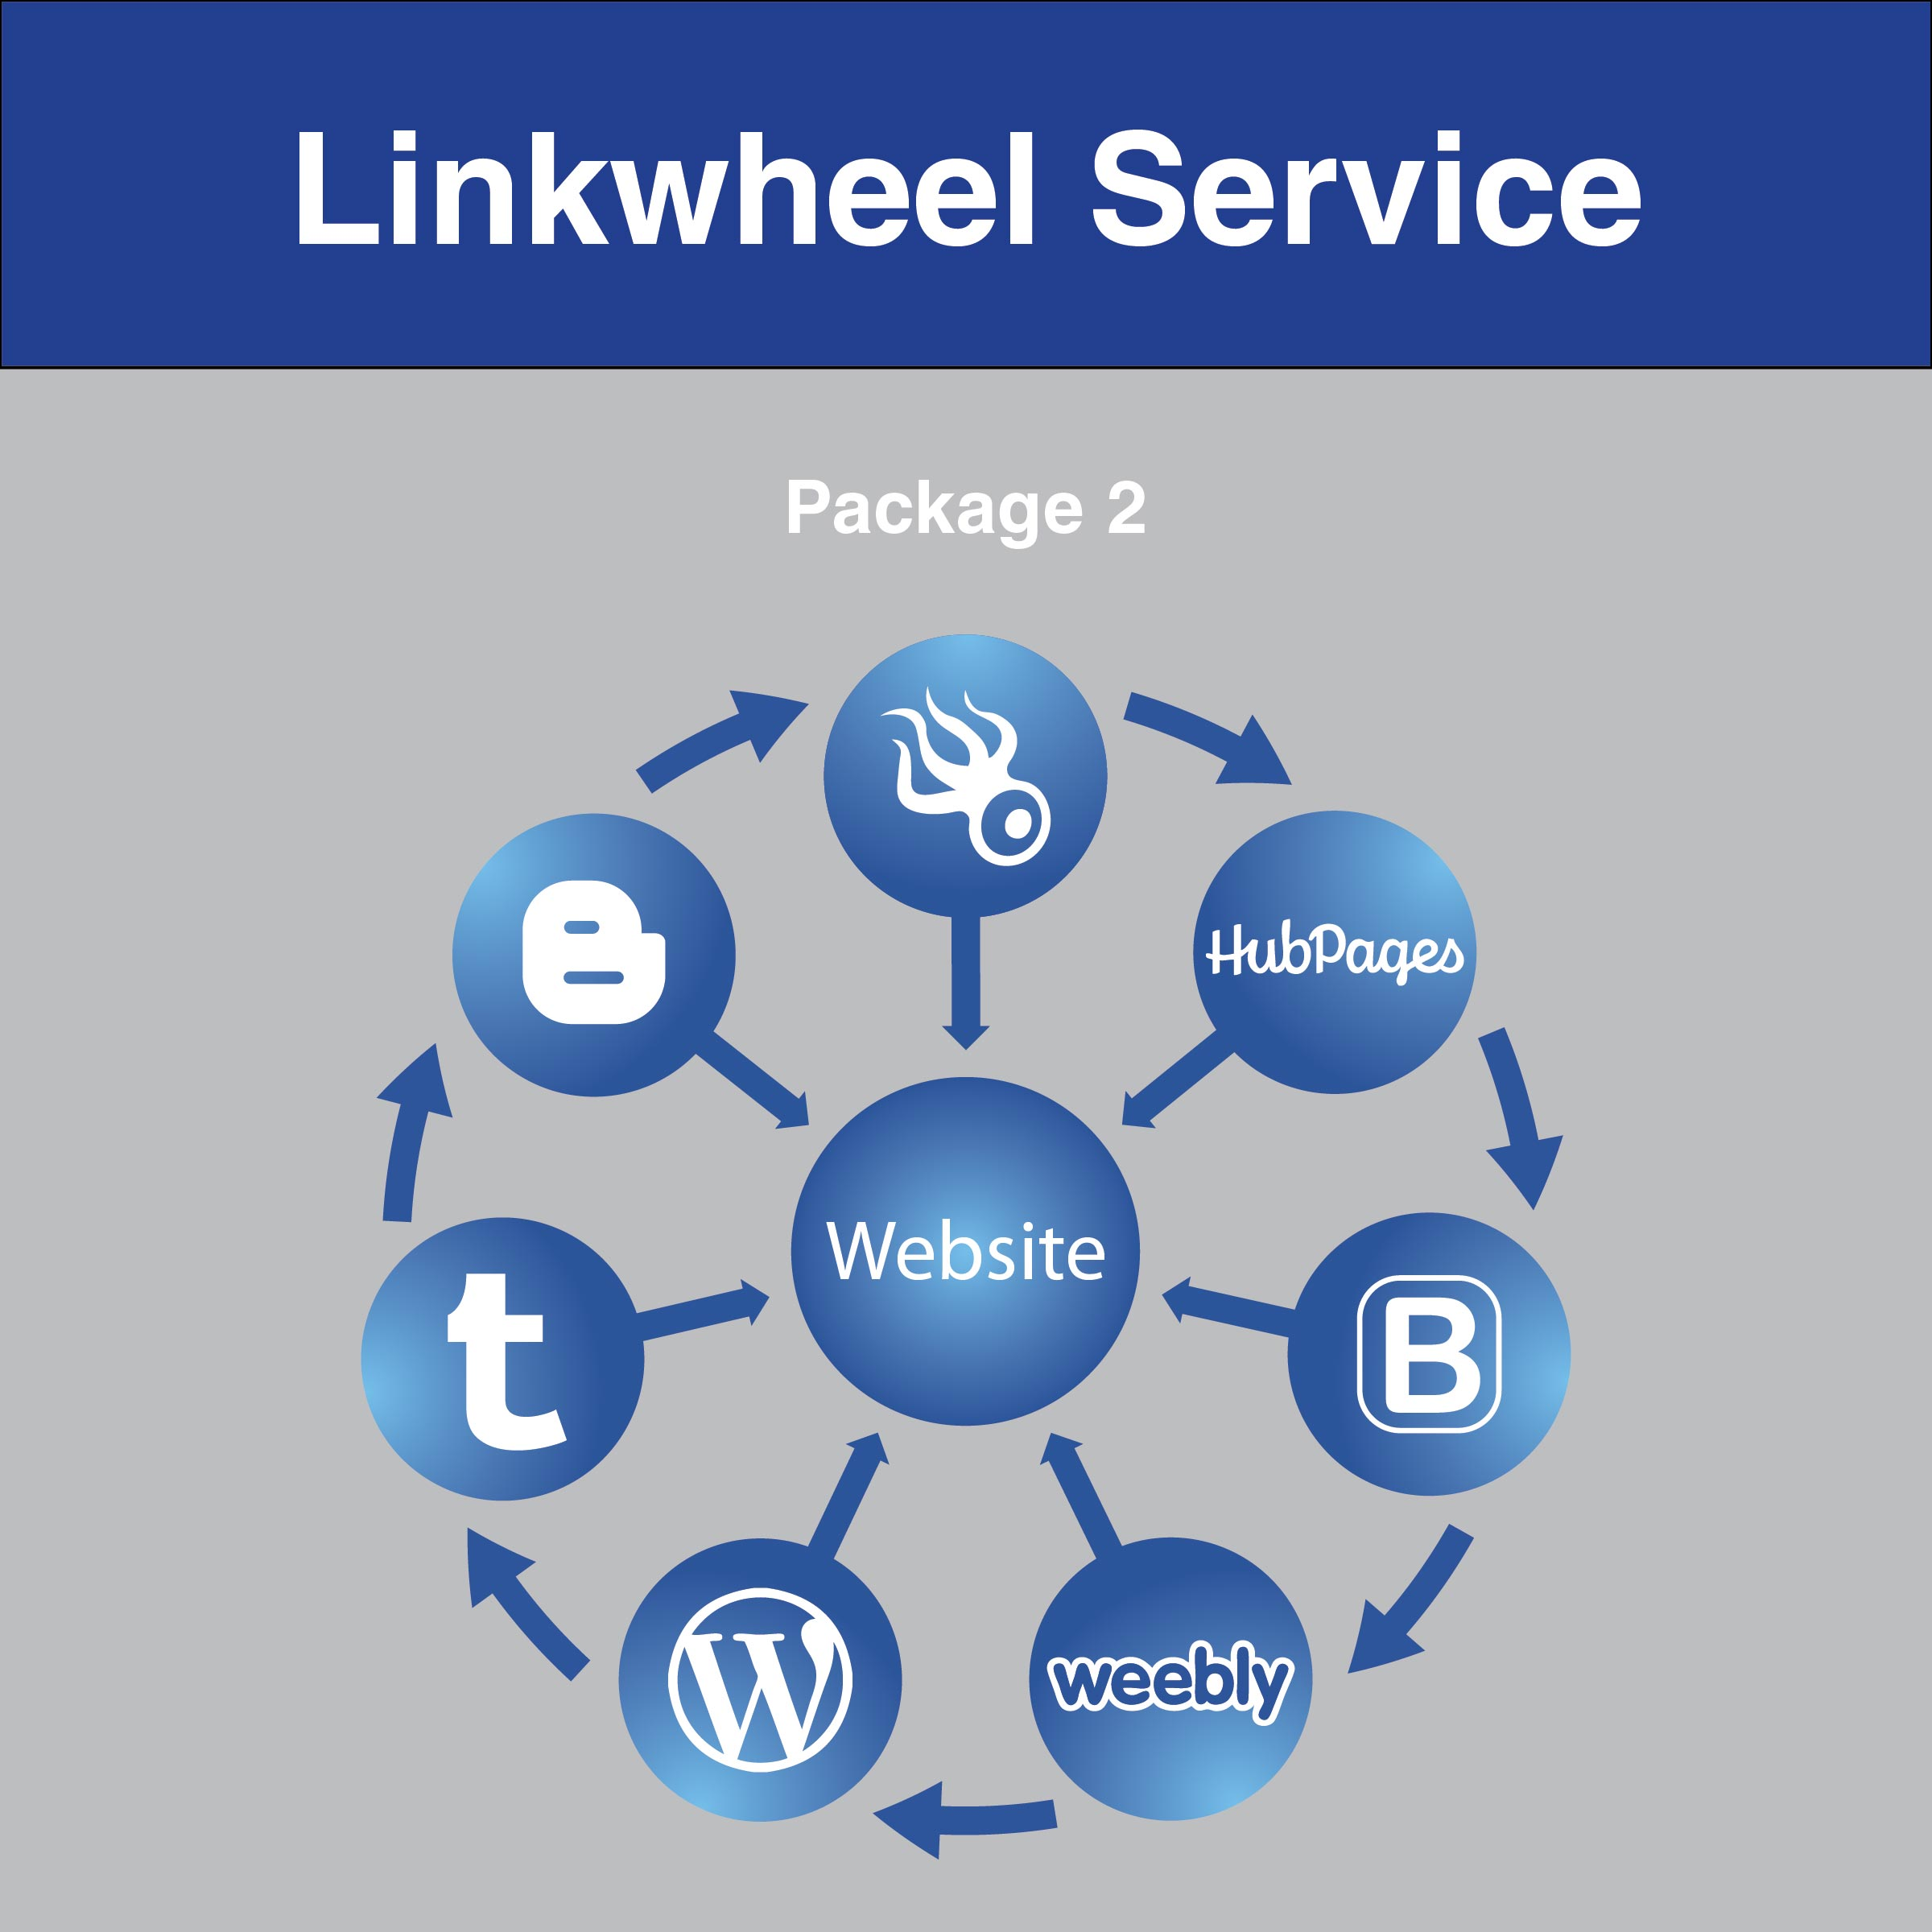 Linkwheel Services